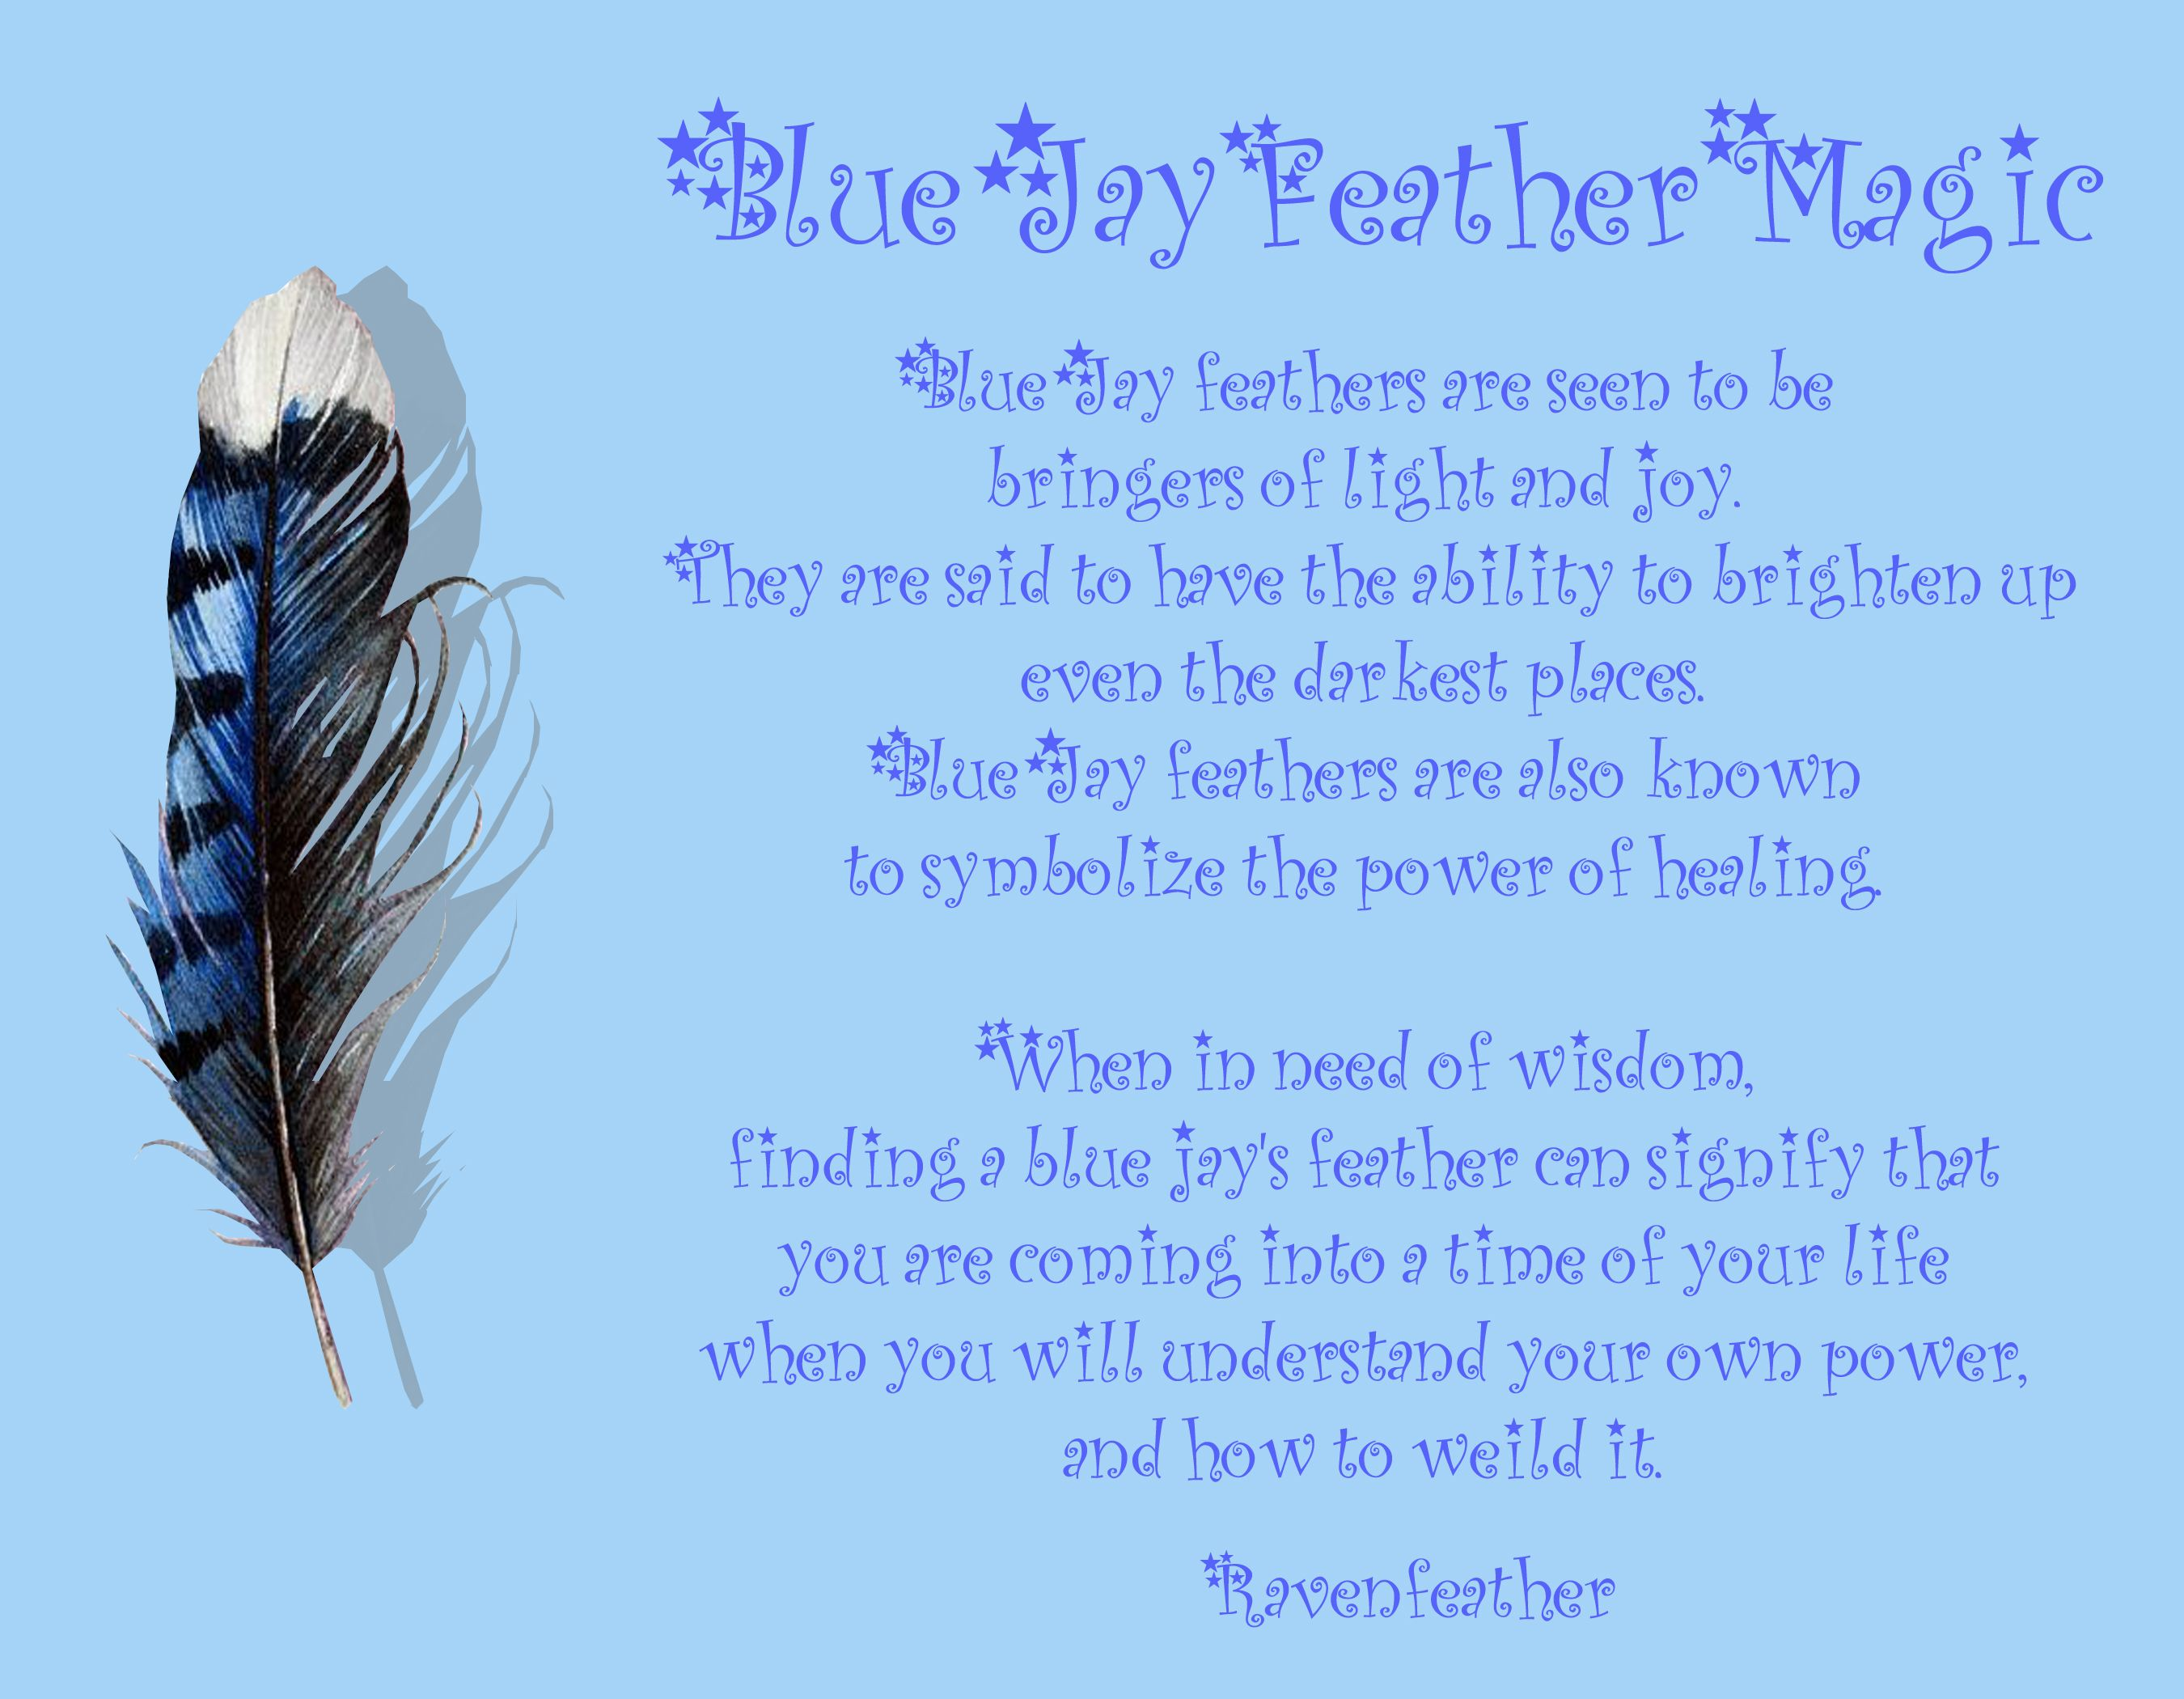 Blue jay feather magic please check your local and federal blue jay feather magic please check your local and federal guidelines for feather collection and buycottarizona Gallery